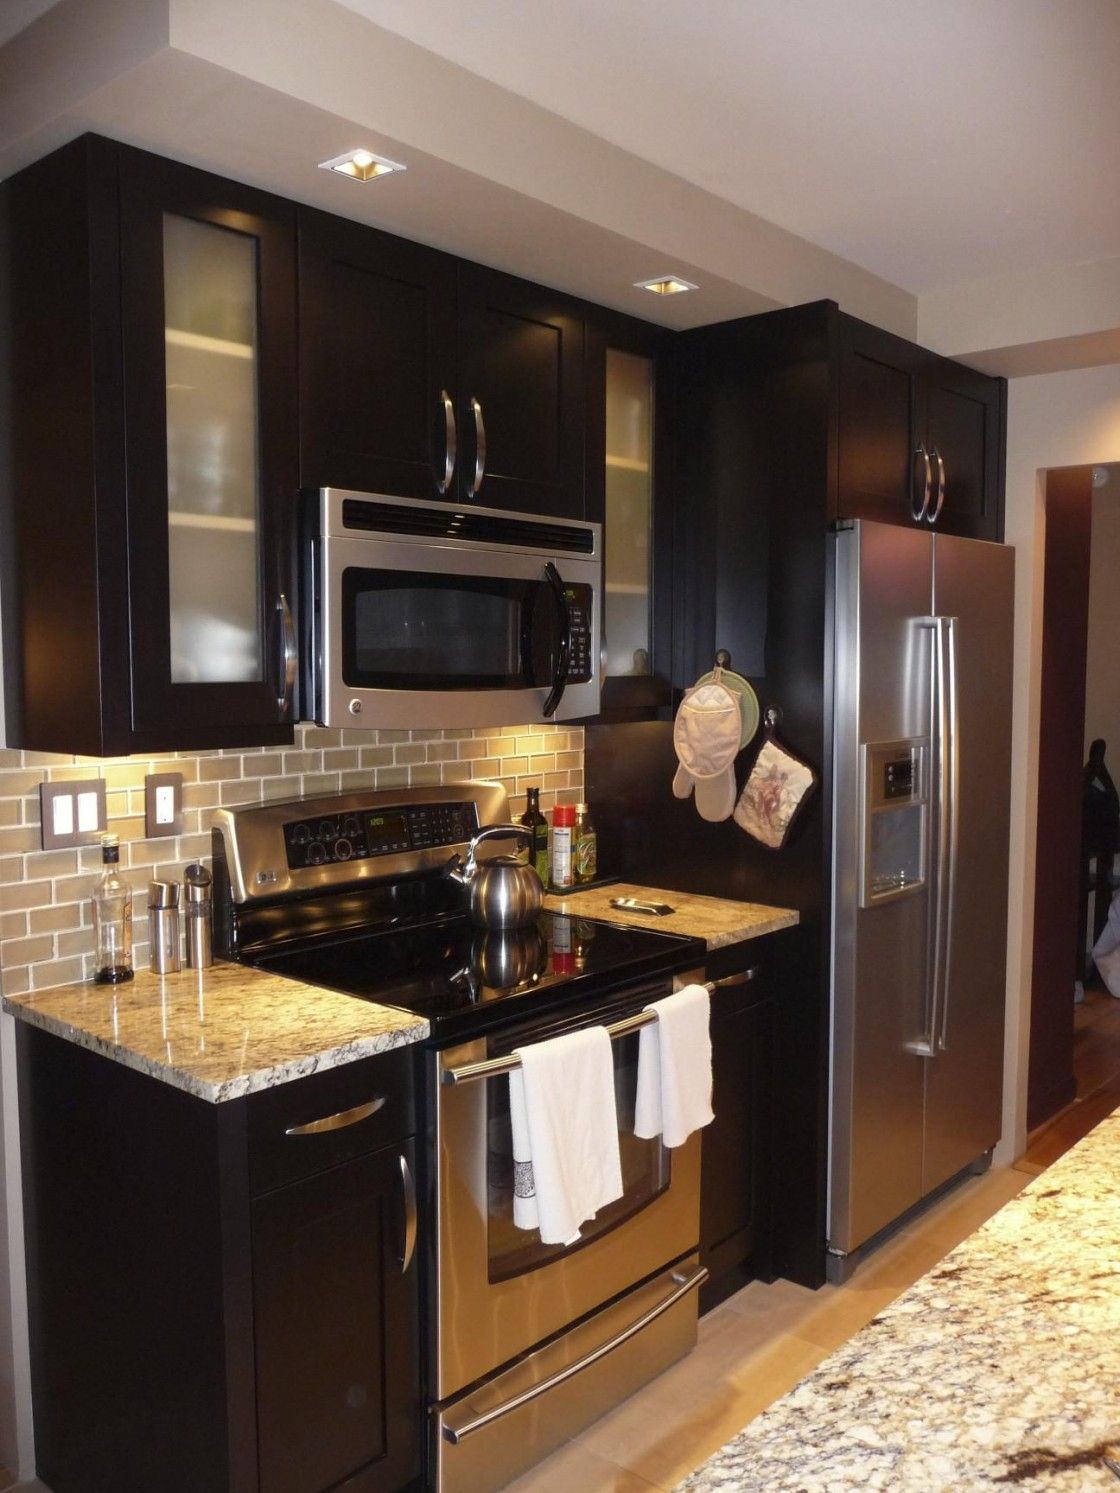 L Modern Small Kitchen Design With Black Painted Cherry Wood Kitchen Cabinets Which Has Italian Granite